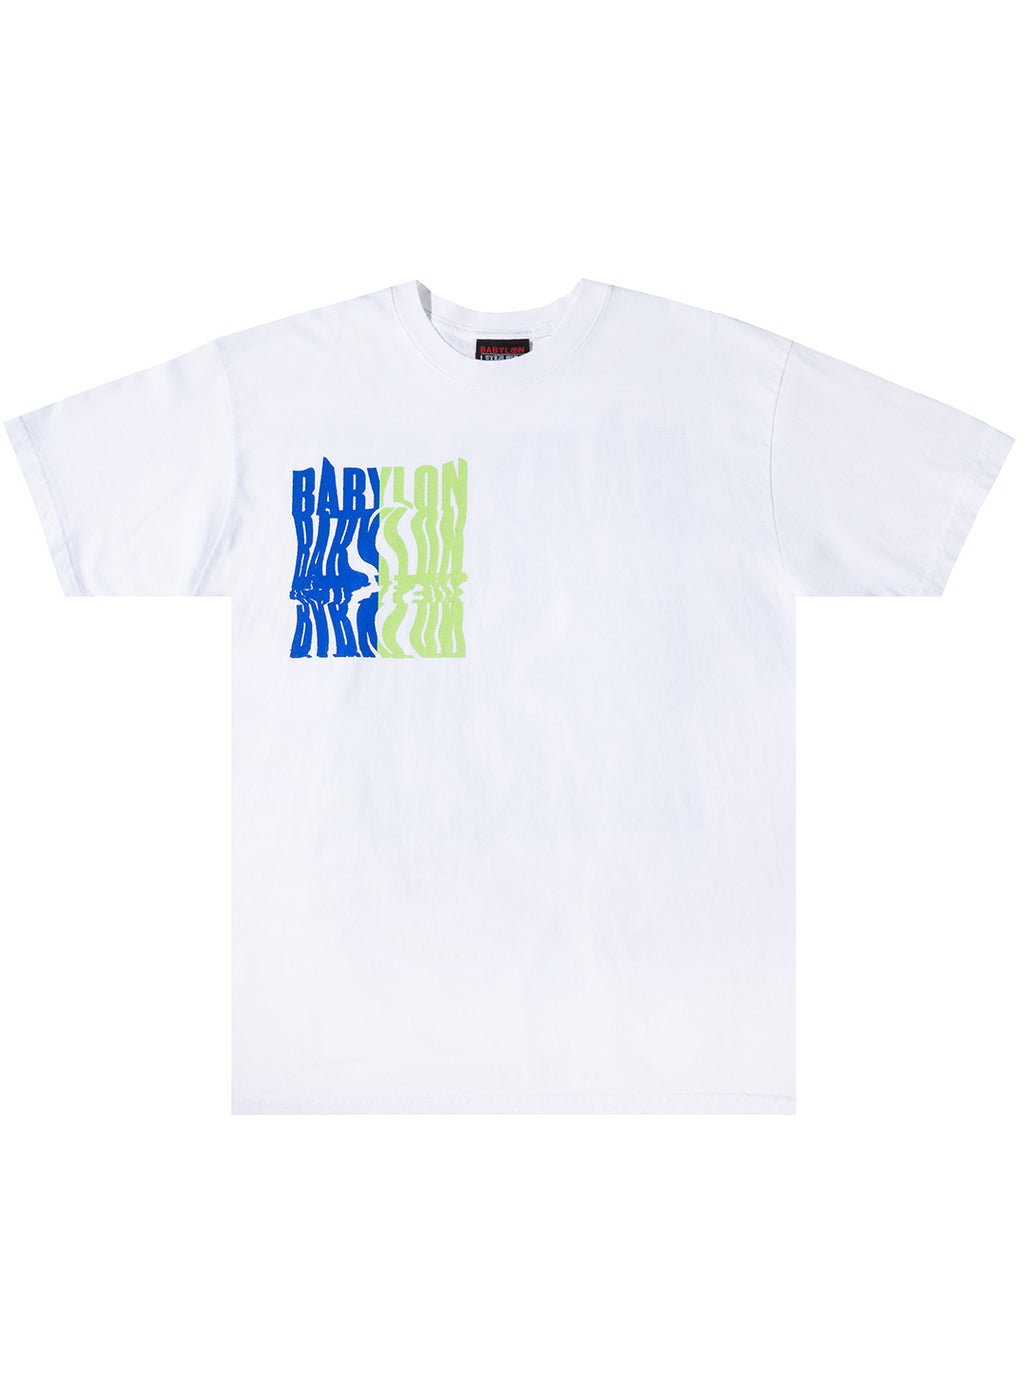 WARP OUT TEE